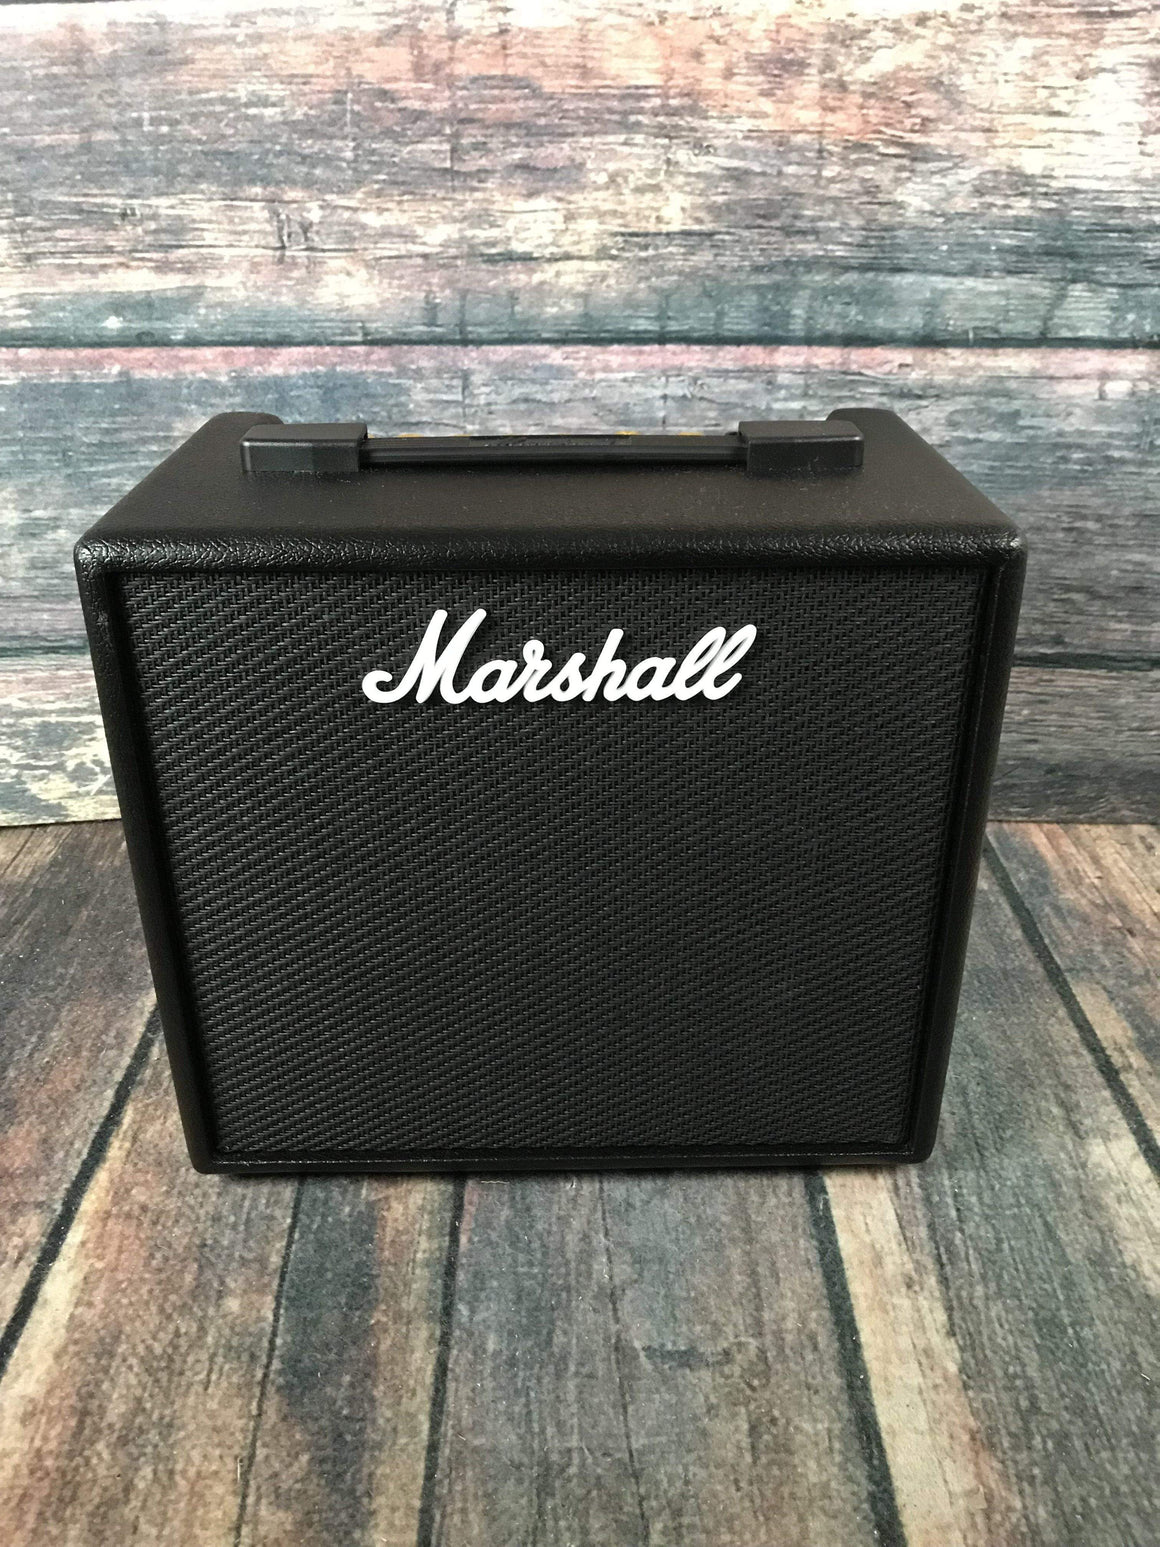 Marshall Amp Used Marshall Code 25 Digital 25w Combo Amp